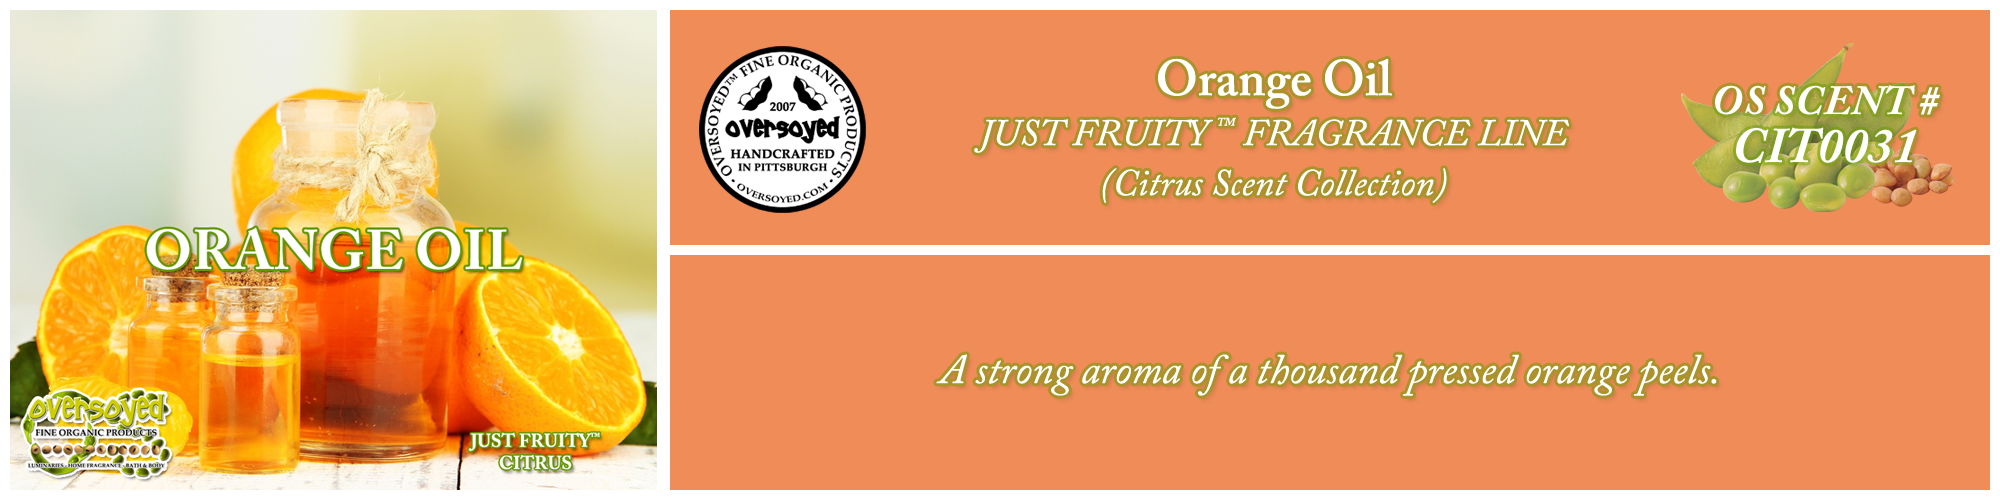 Orange Oil Handcrafted Products Collection